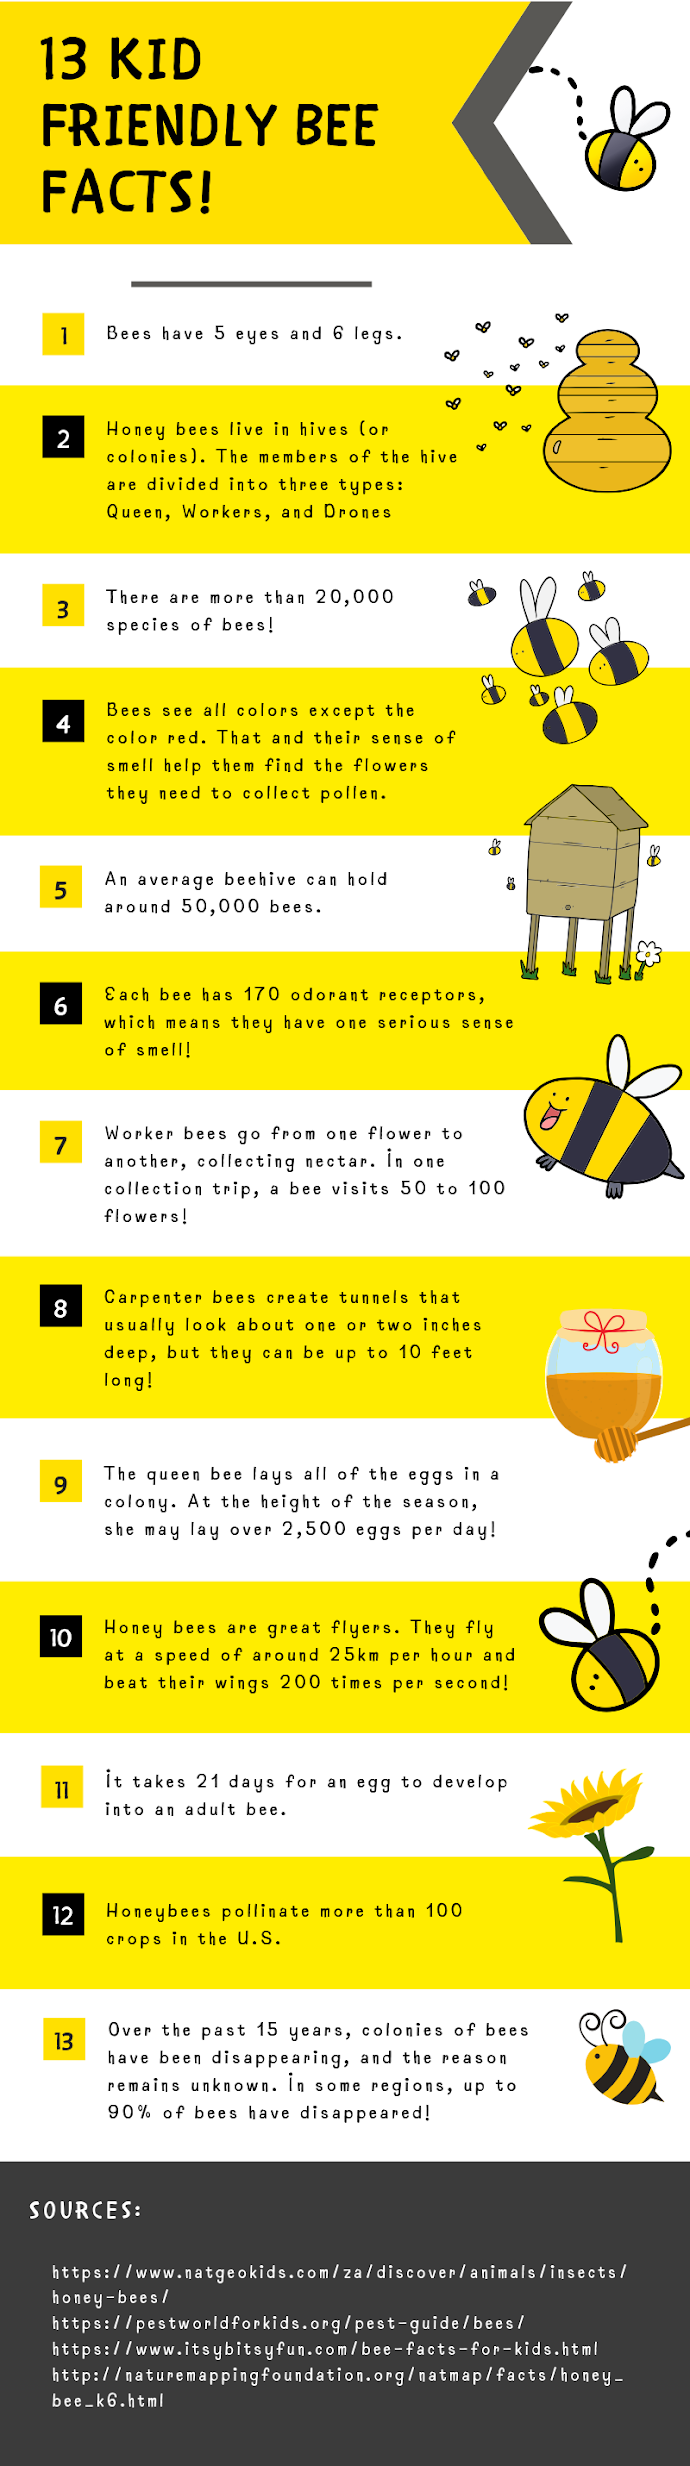 17 fun facts about bees